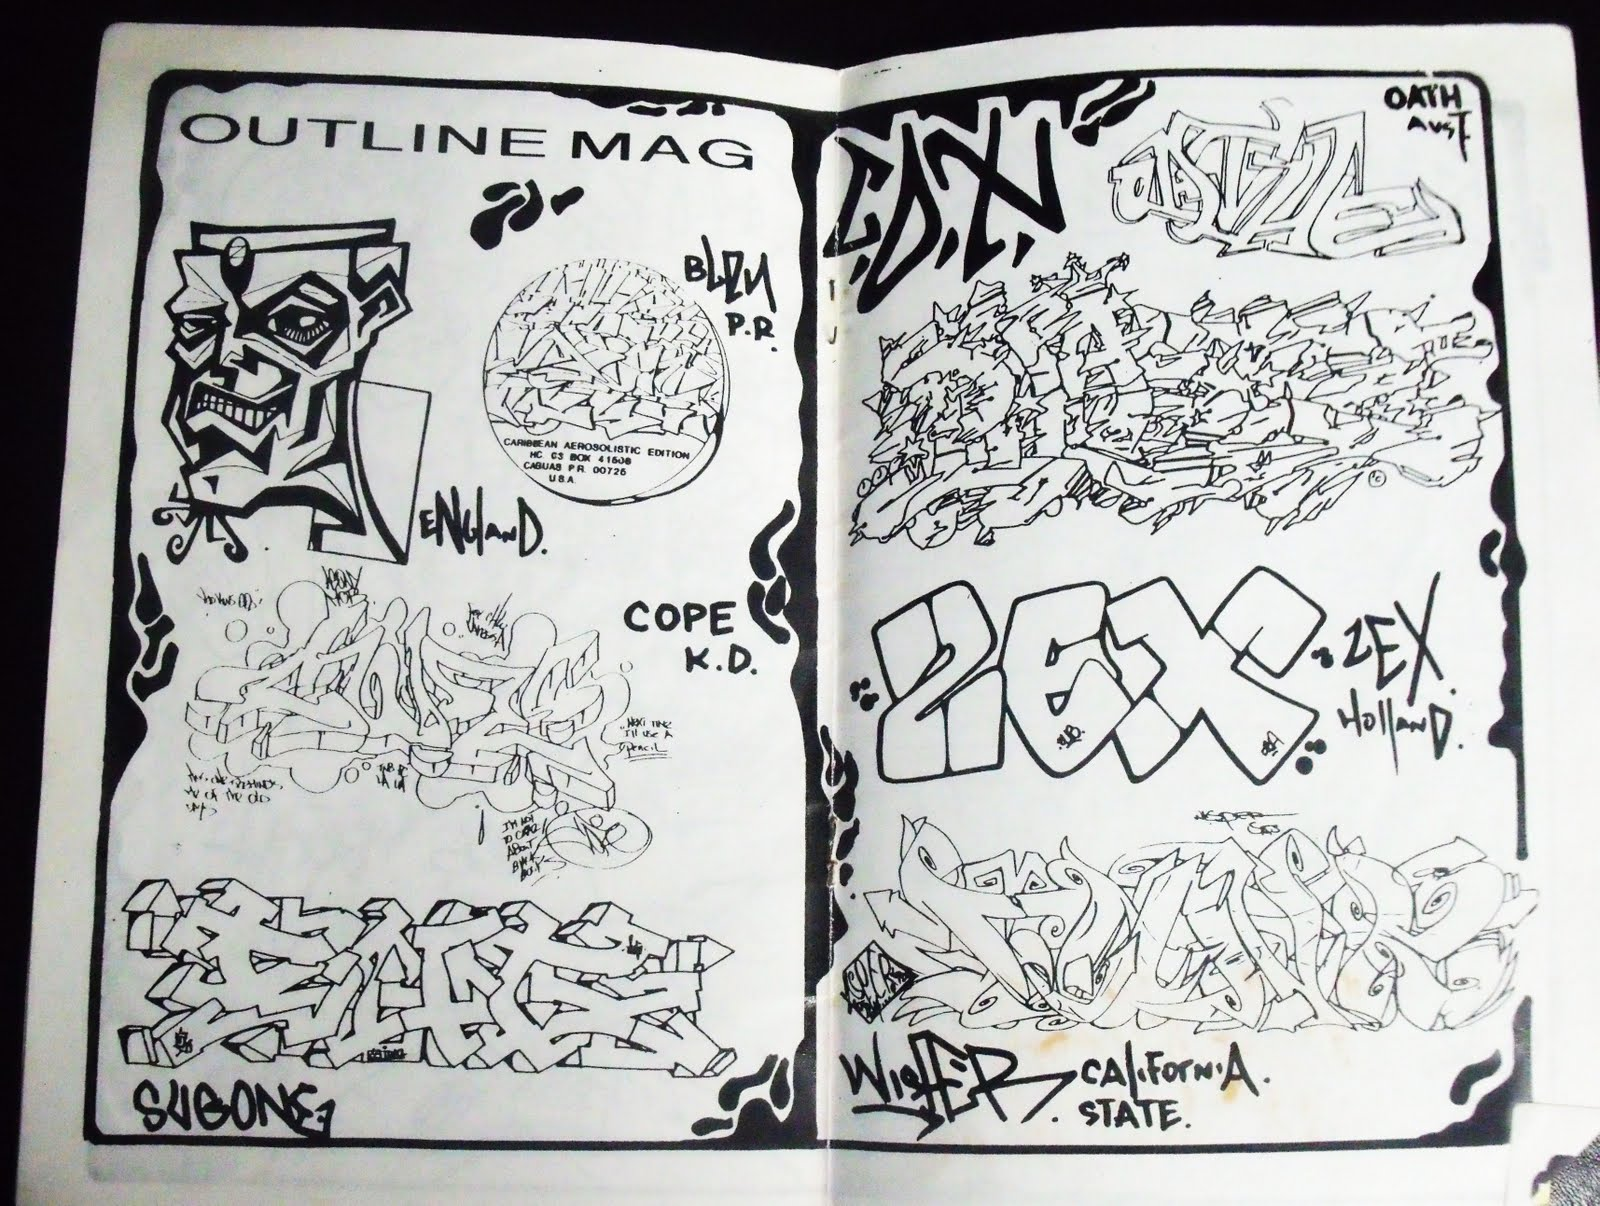 In the early 80s phase 2 pulled out what i think was the first graffiti zine if he even sees me ueing the word graffiti im gonna here it